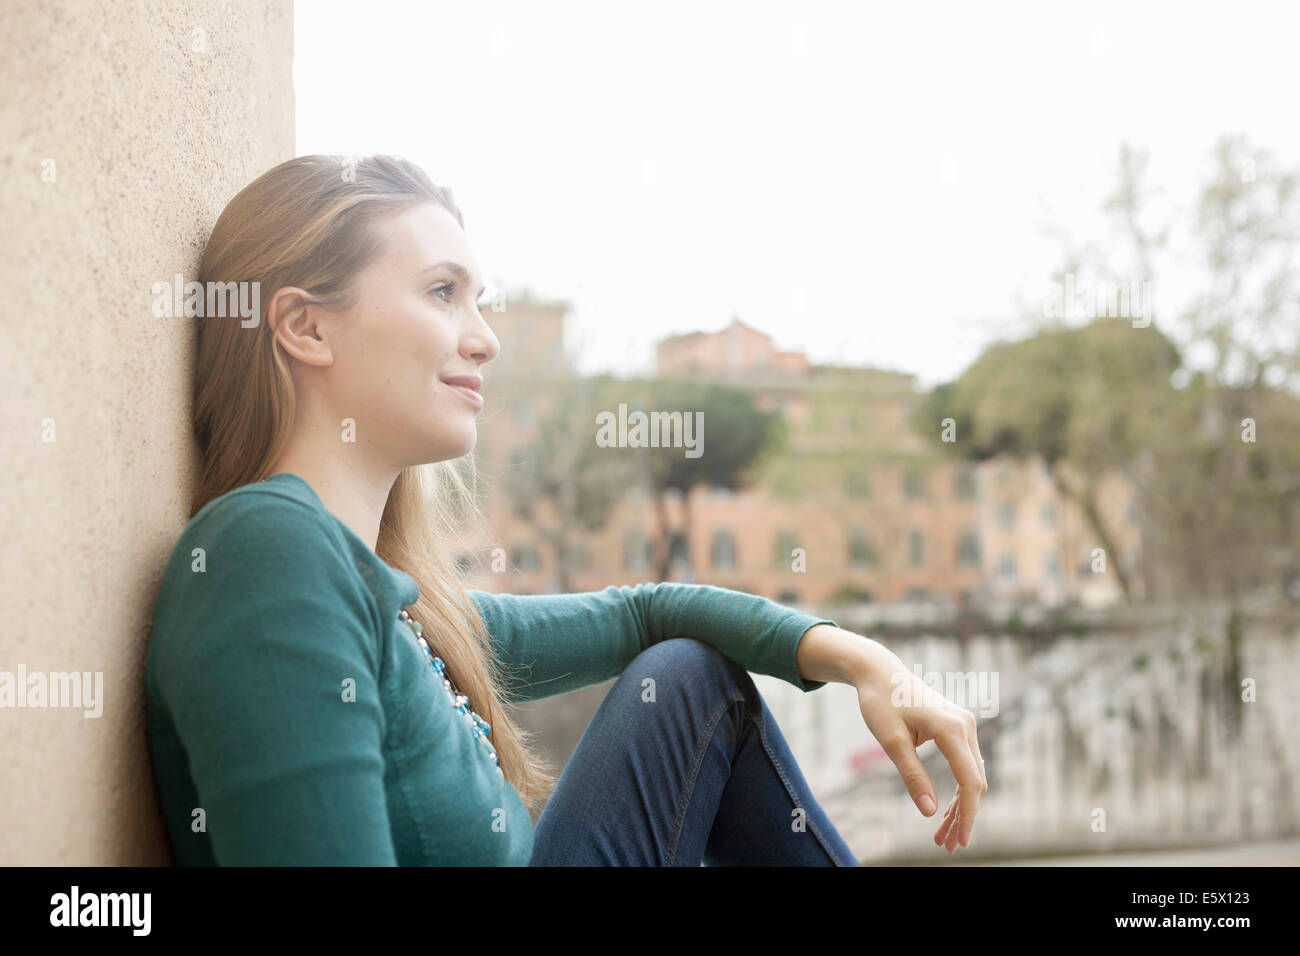 Young woman leaning against wall, Isola Tiberina, Rome, Italy - Stock Image